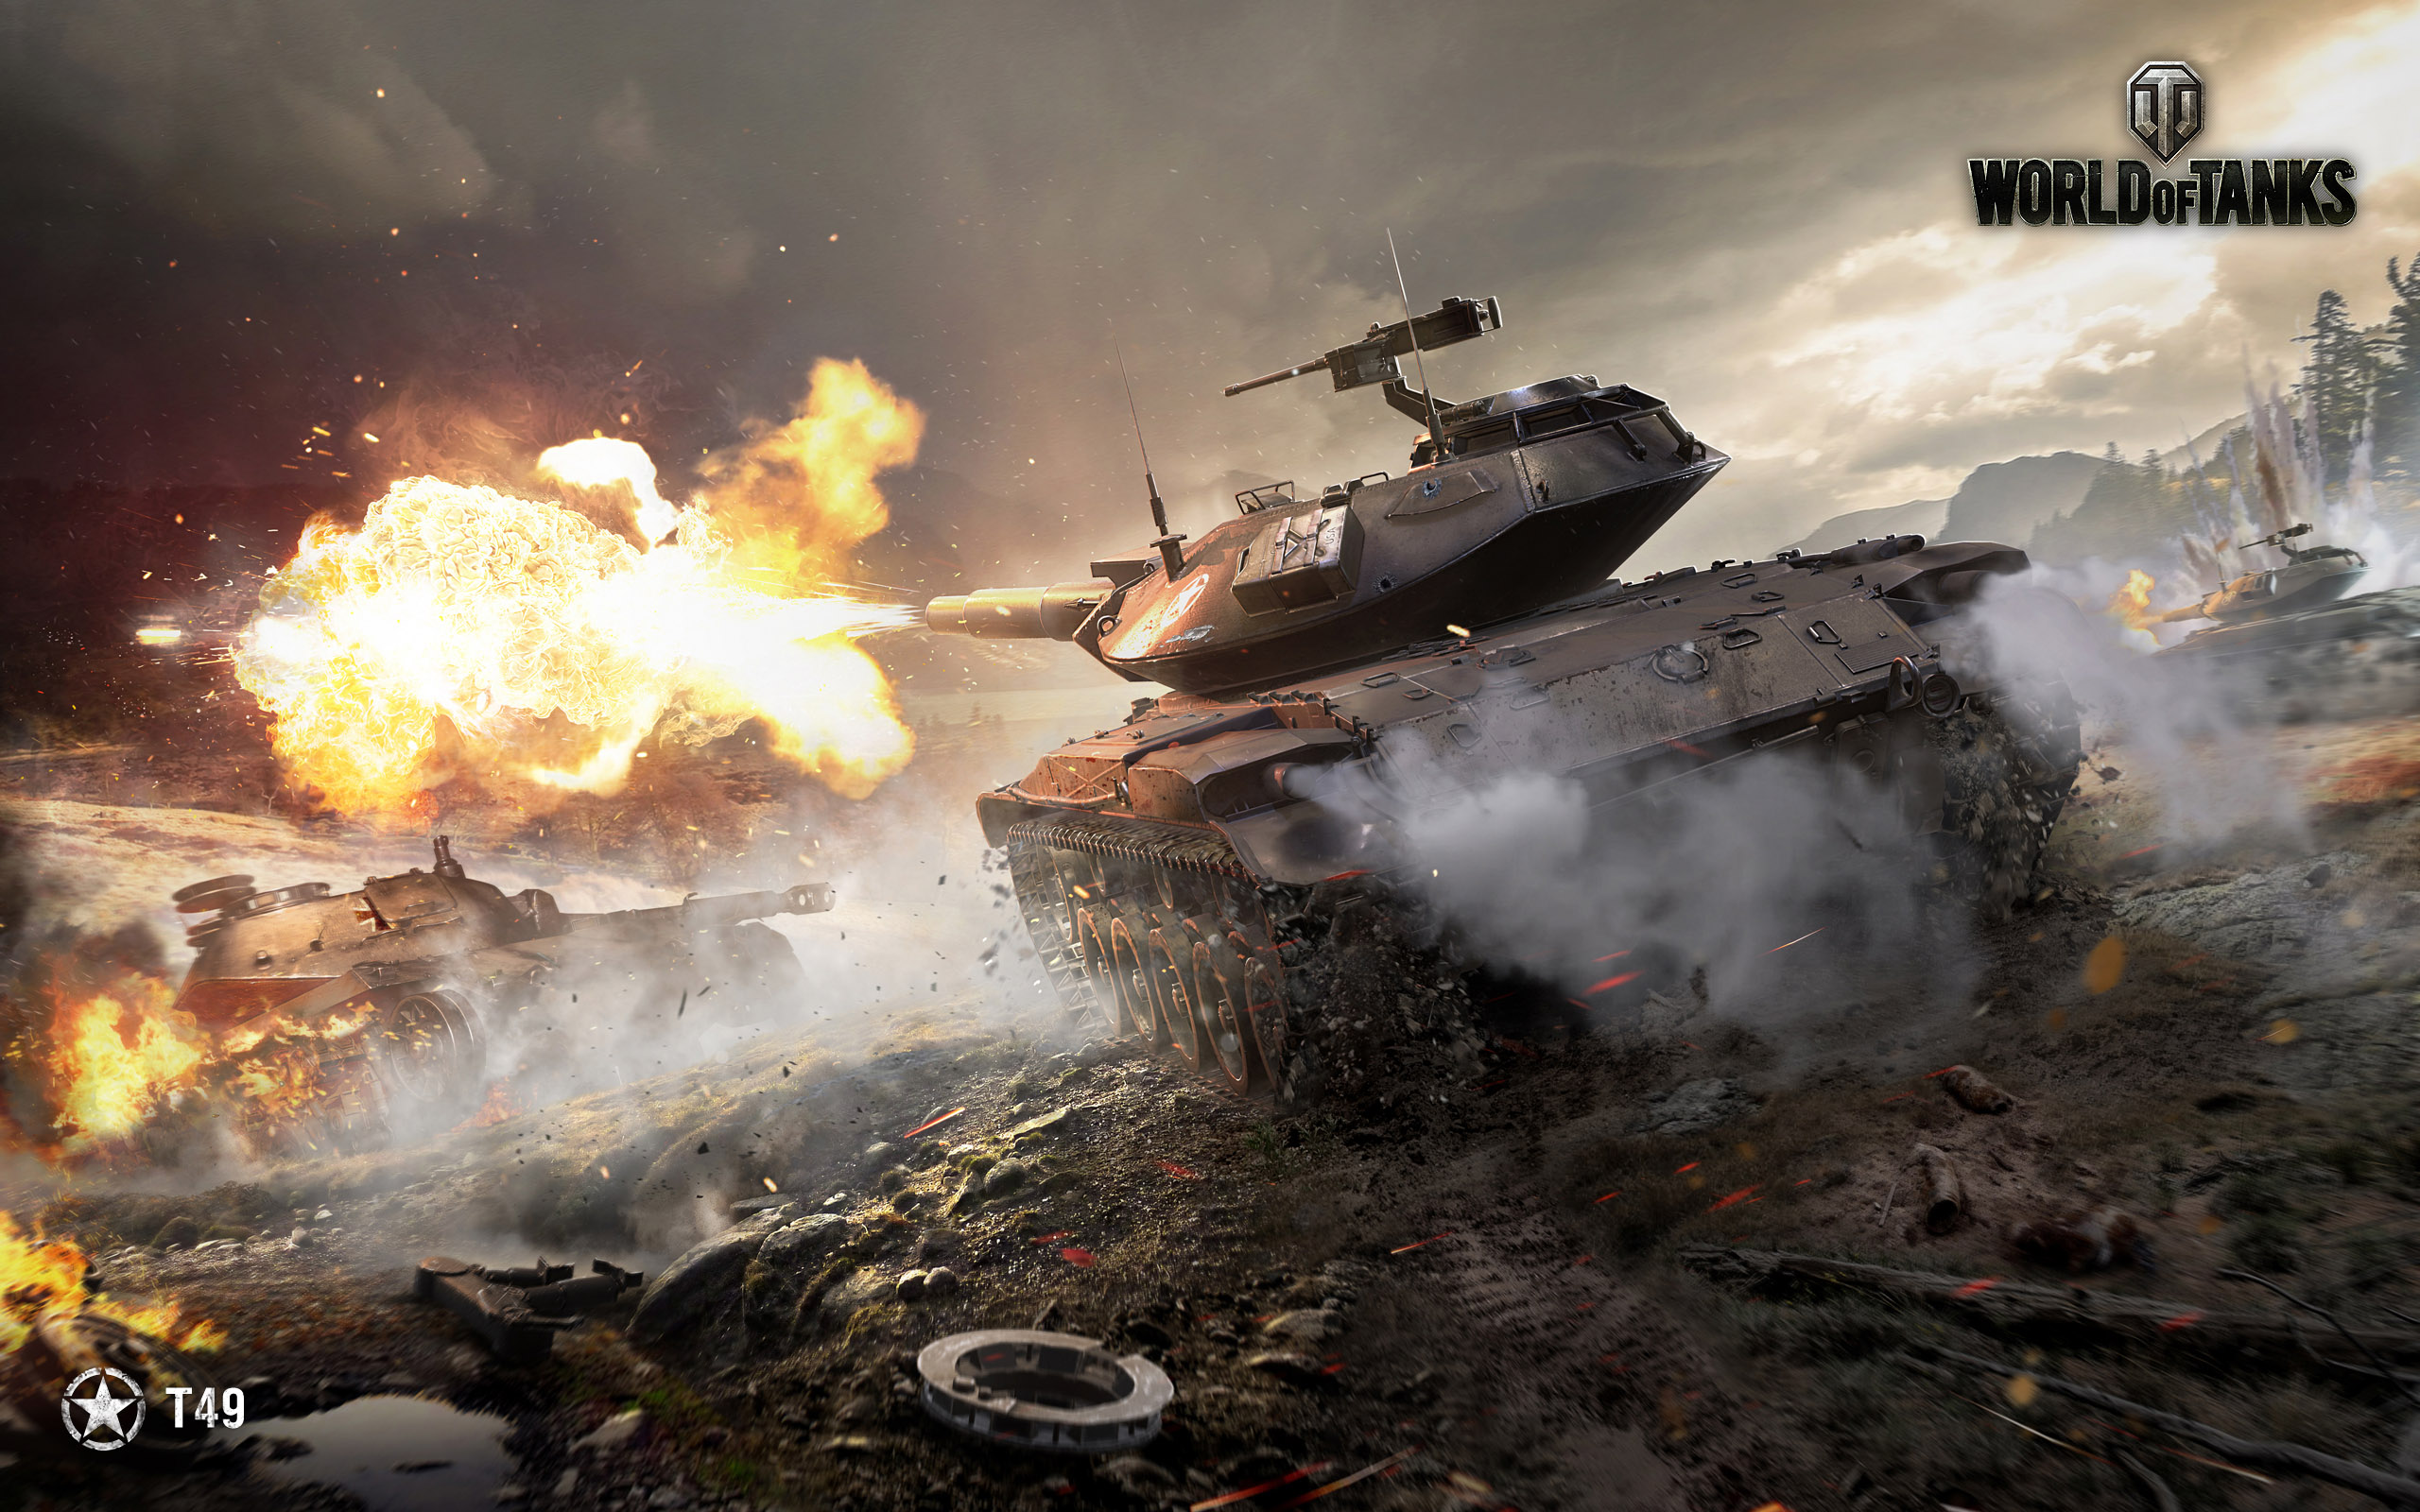 HD Wallpapers T49 World of Tanks